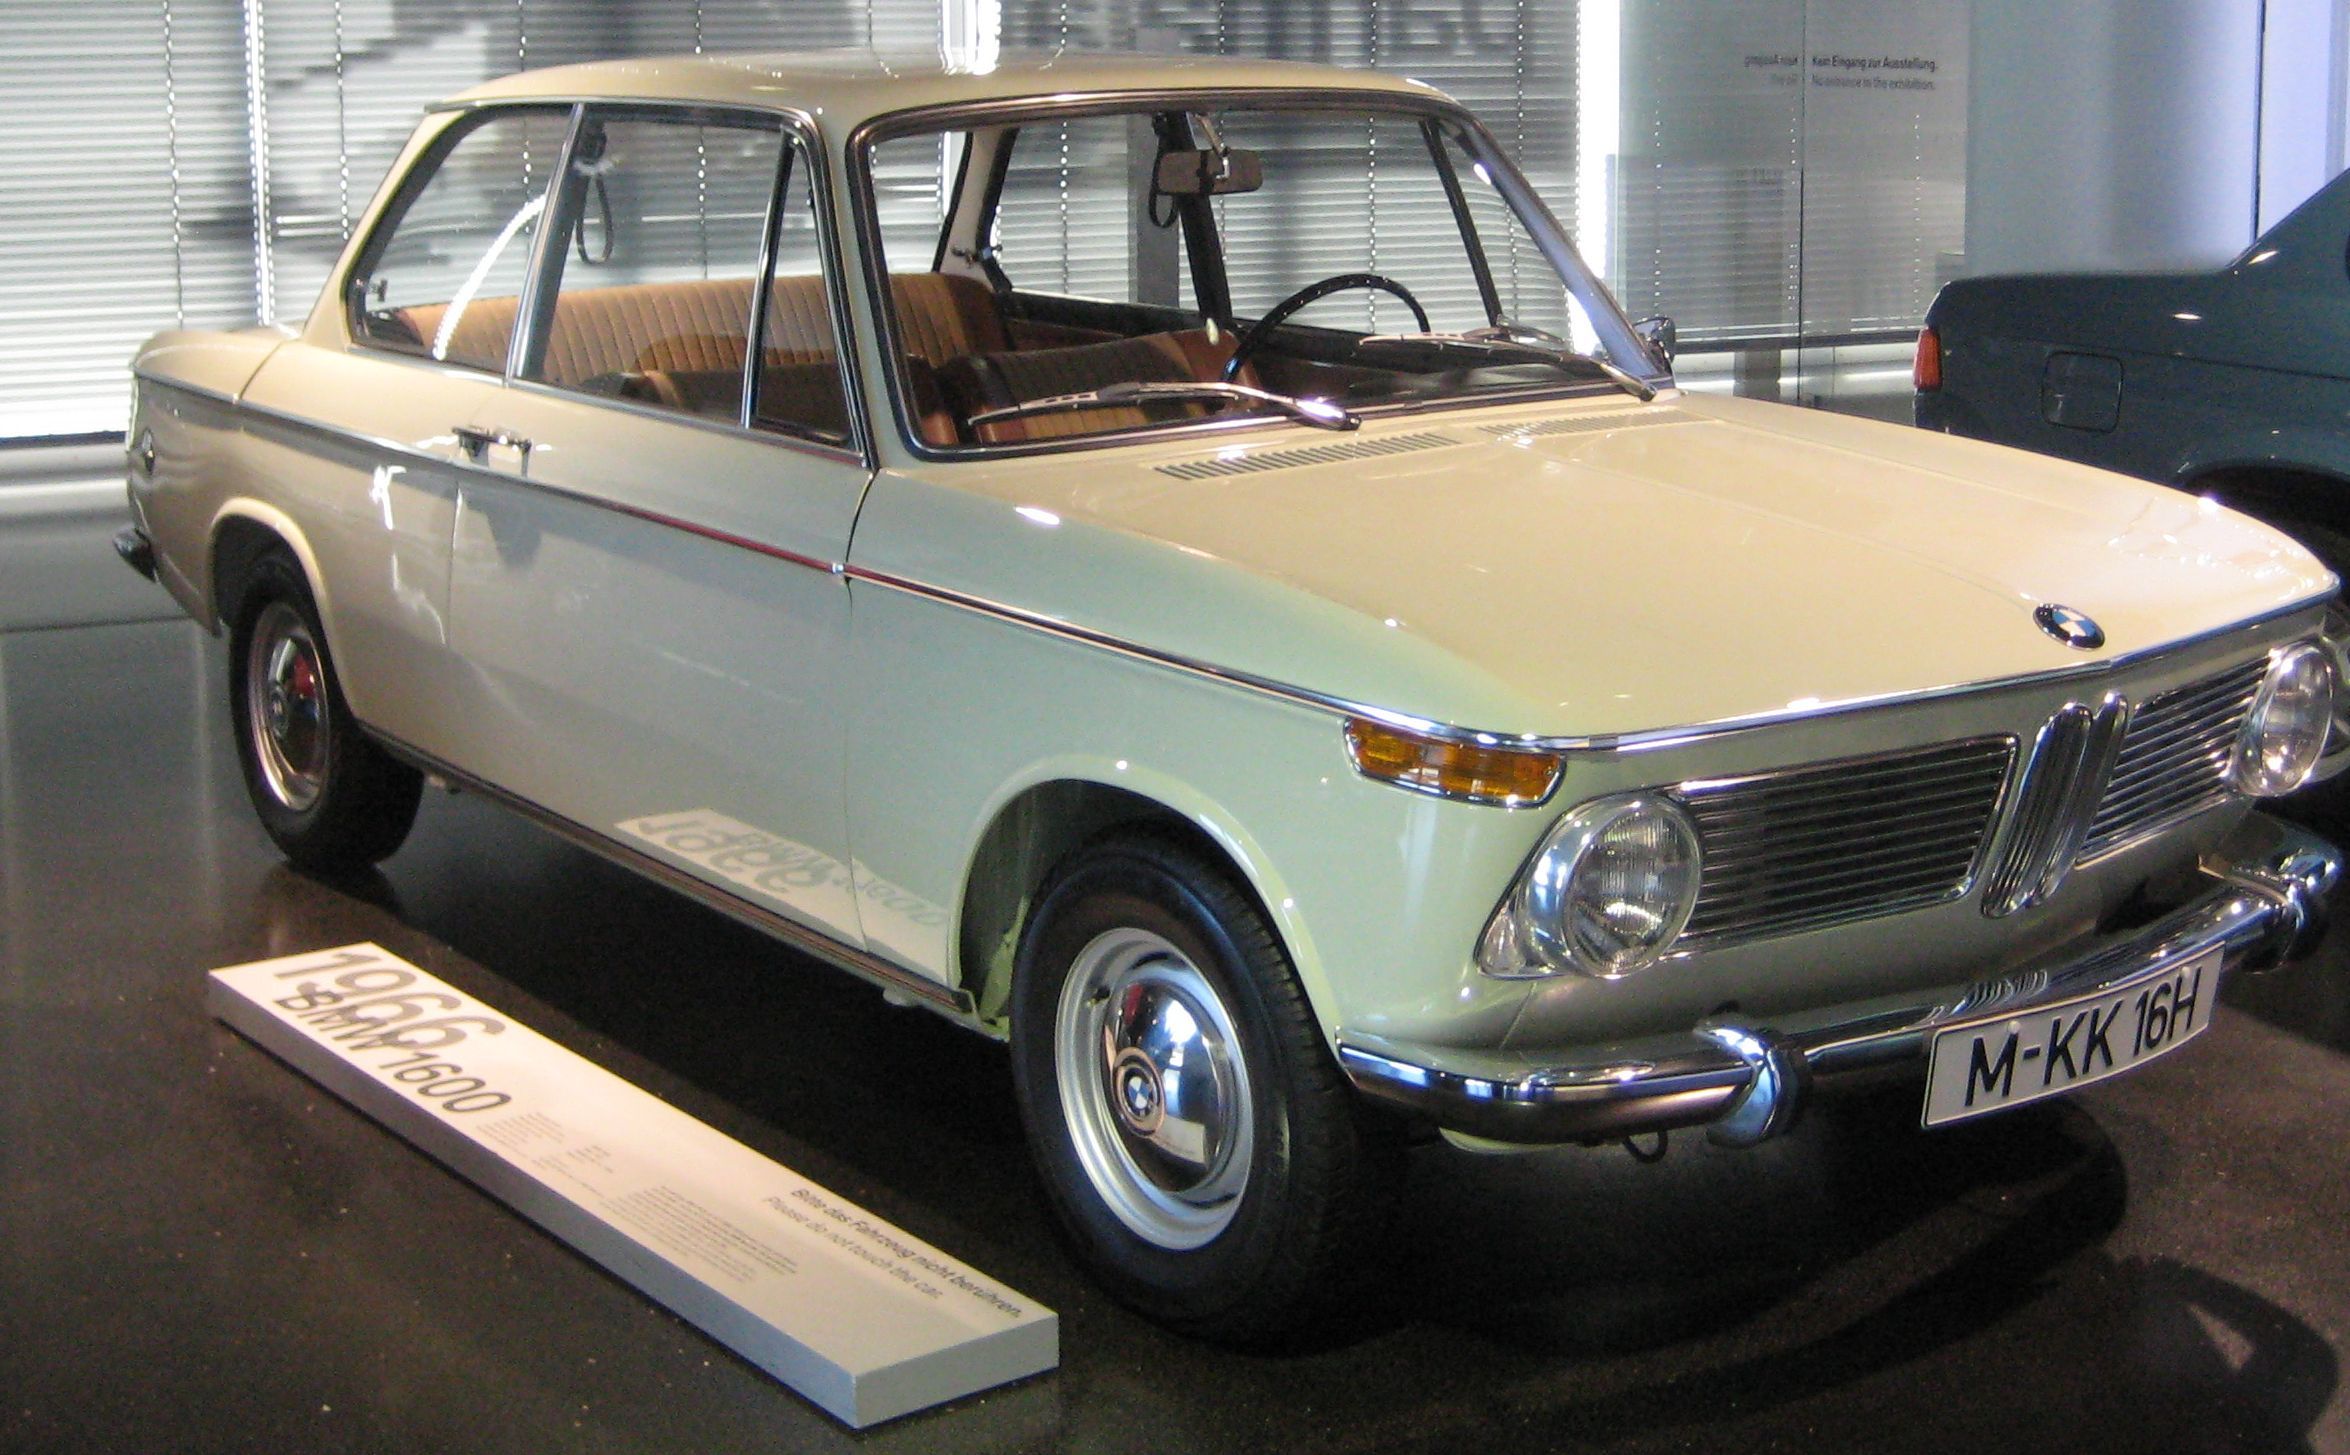 File:1966 BMW 1600-2 in BMW Museum.jpg - Wikimedia Commons